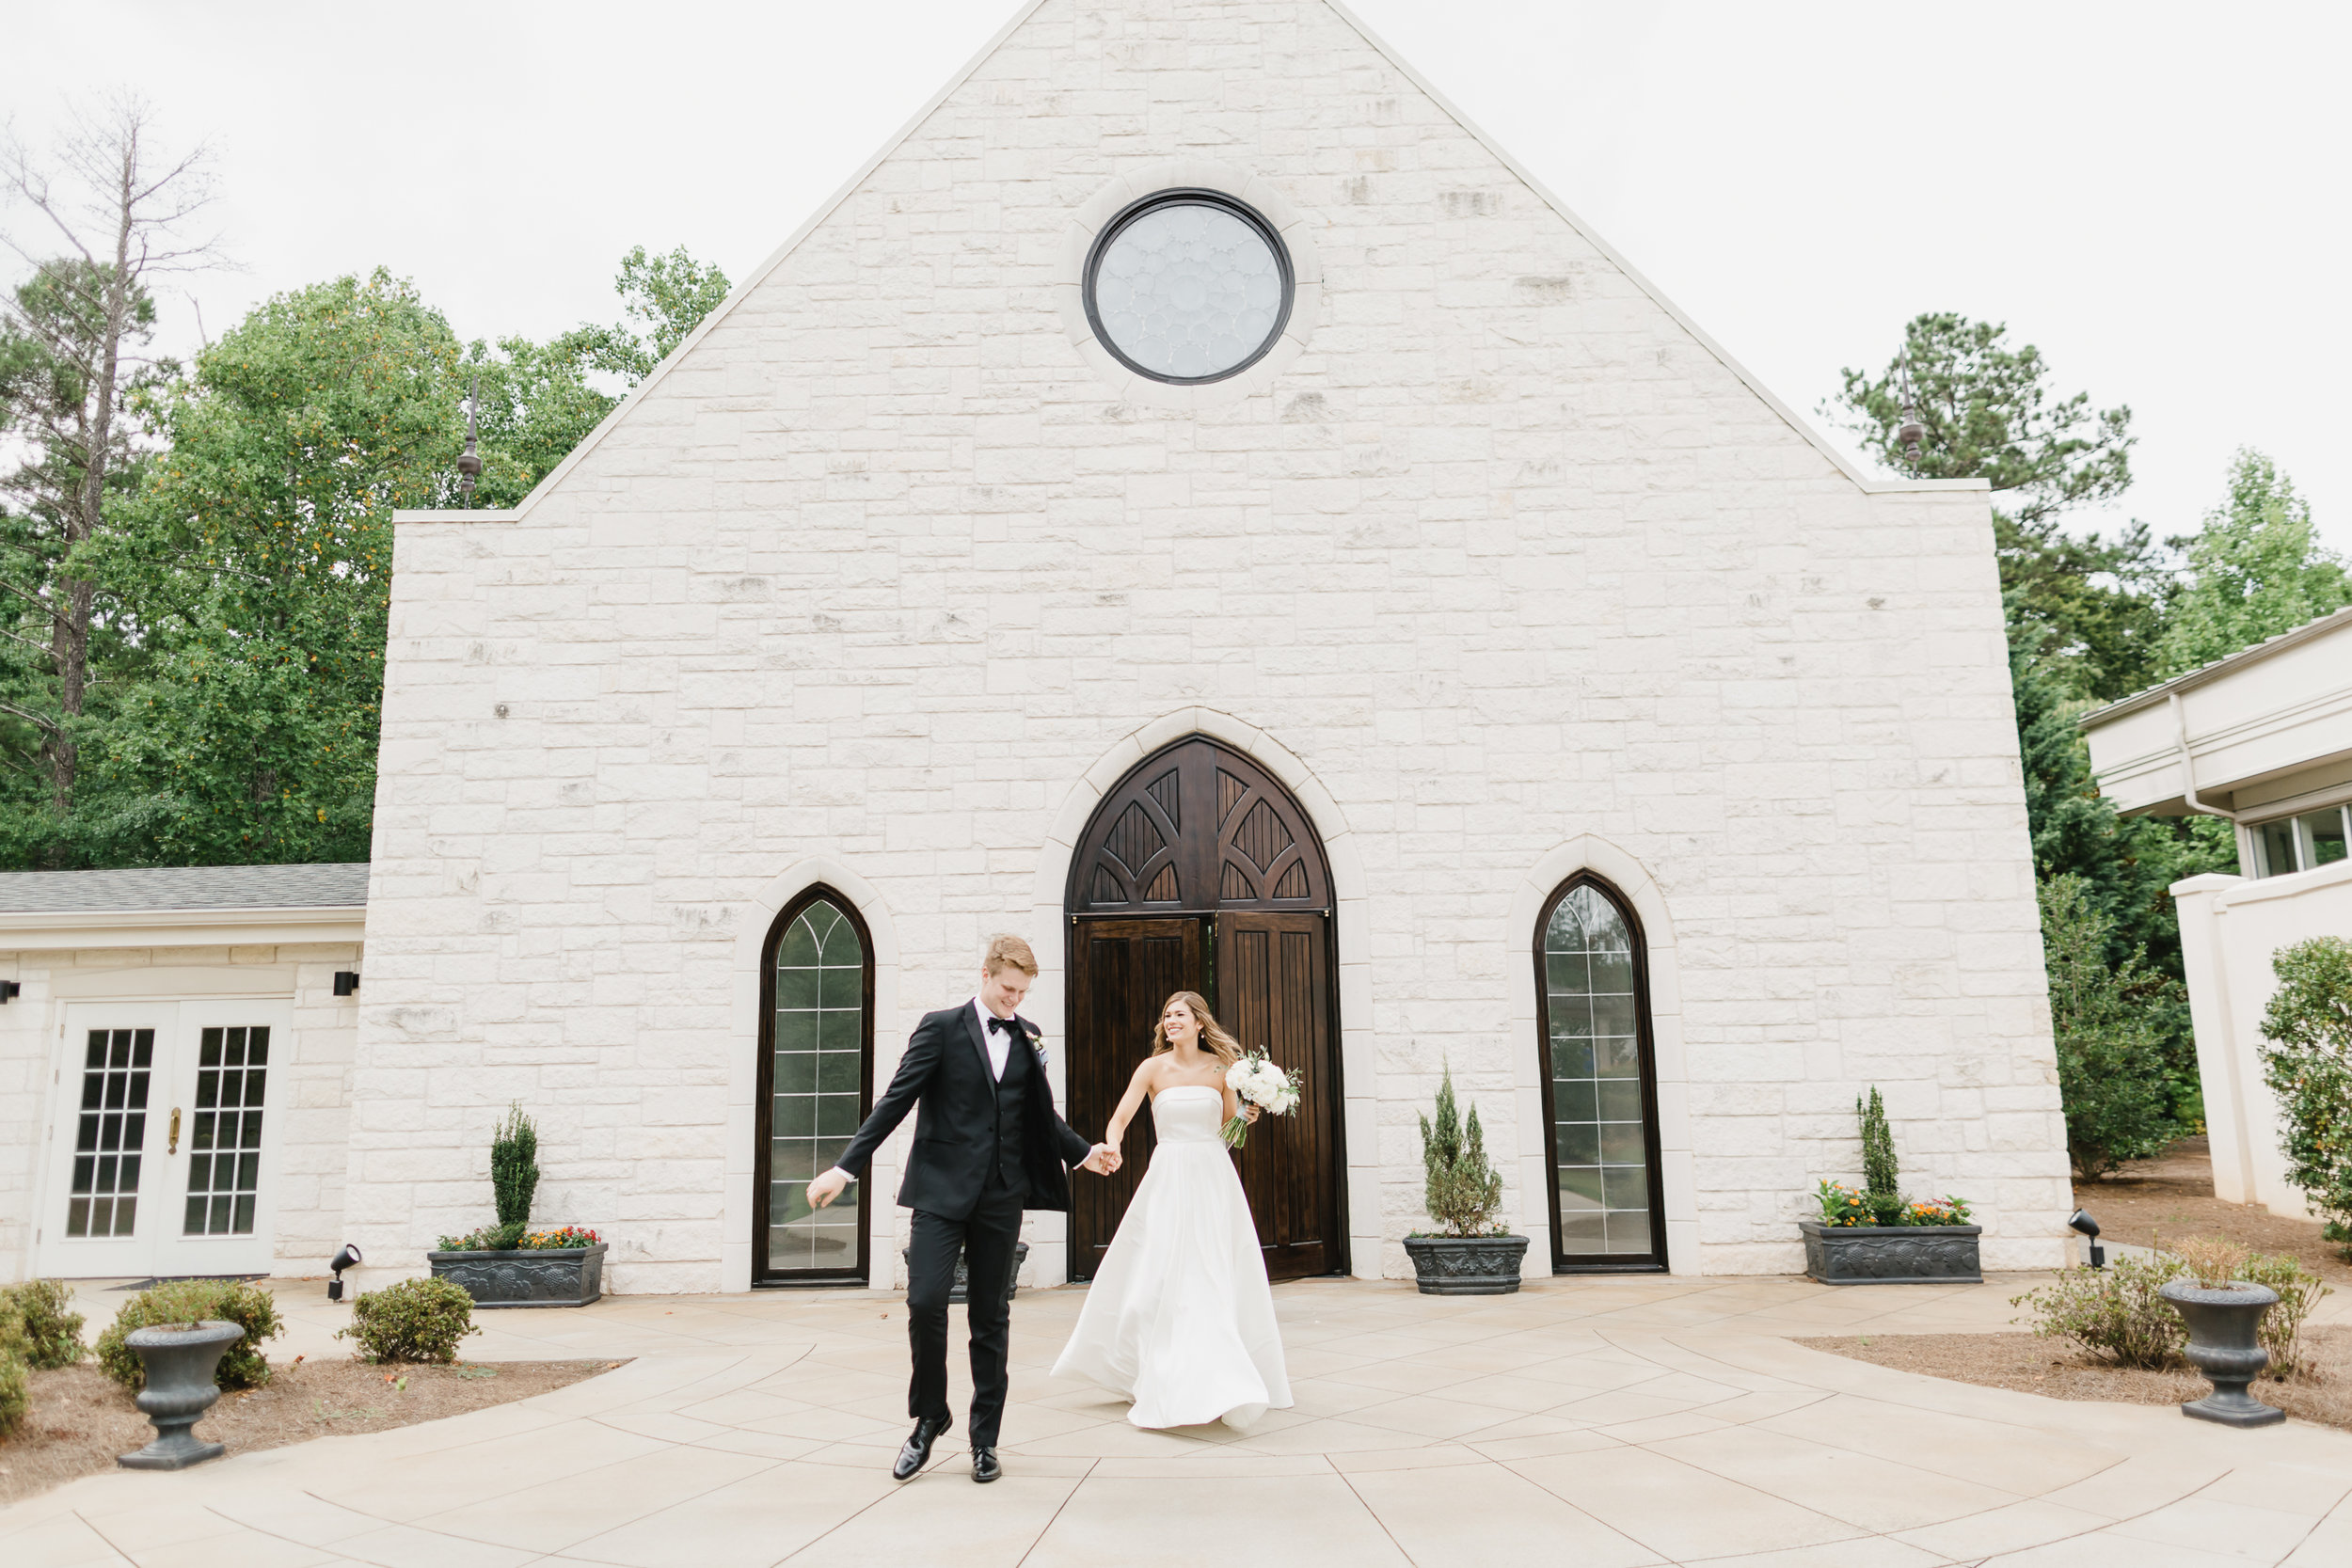 Gianna Keiko Atlanta NYC California Wedding Photographer_sneak peek-18.jpg